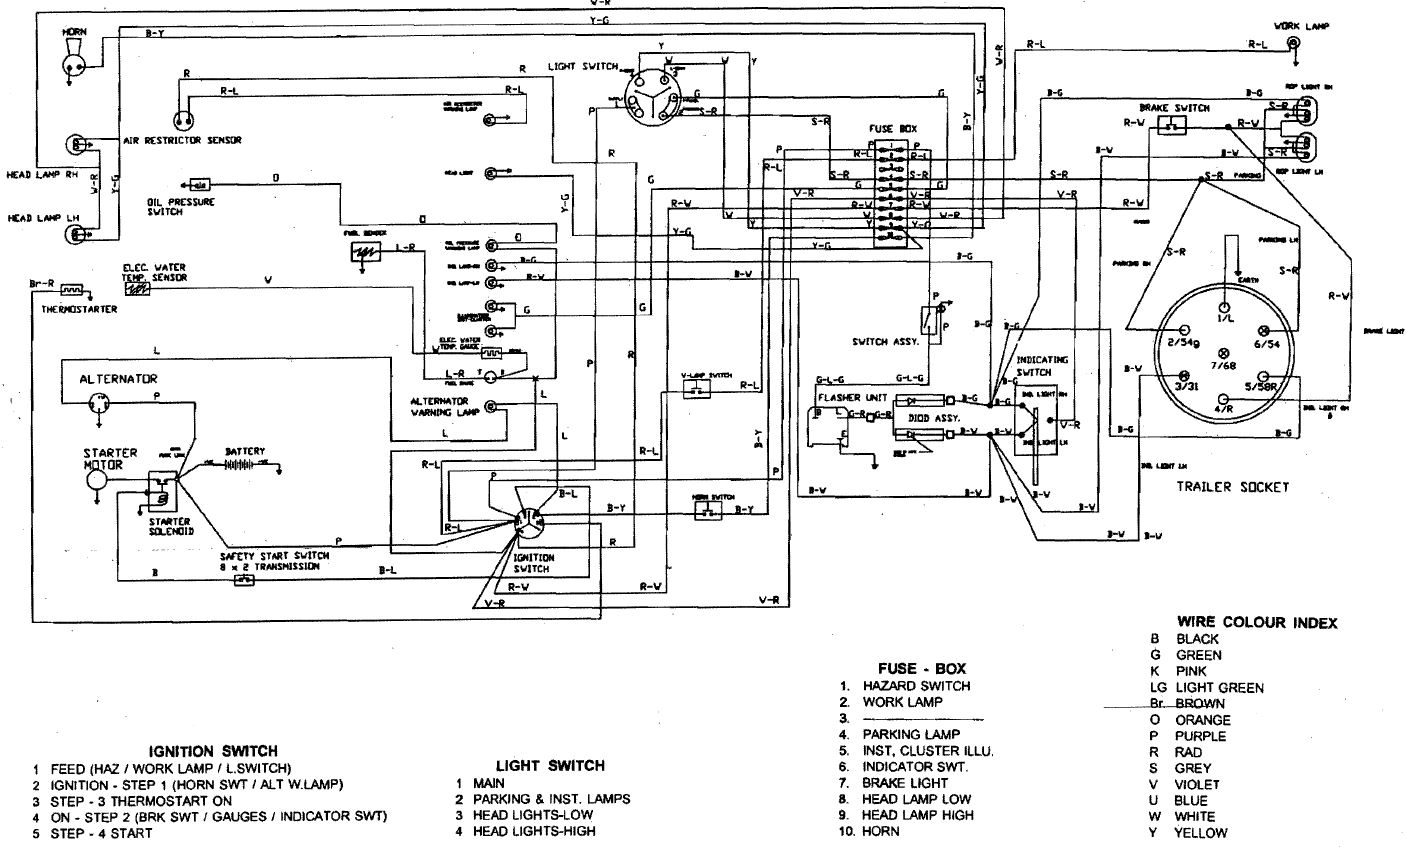 20158463319_b82d524c3d_o ignition switch wiring diagram sundowner wiring diagram at soozxer.org